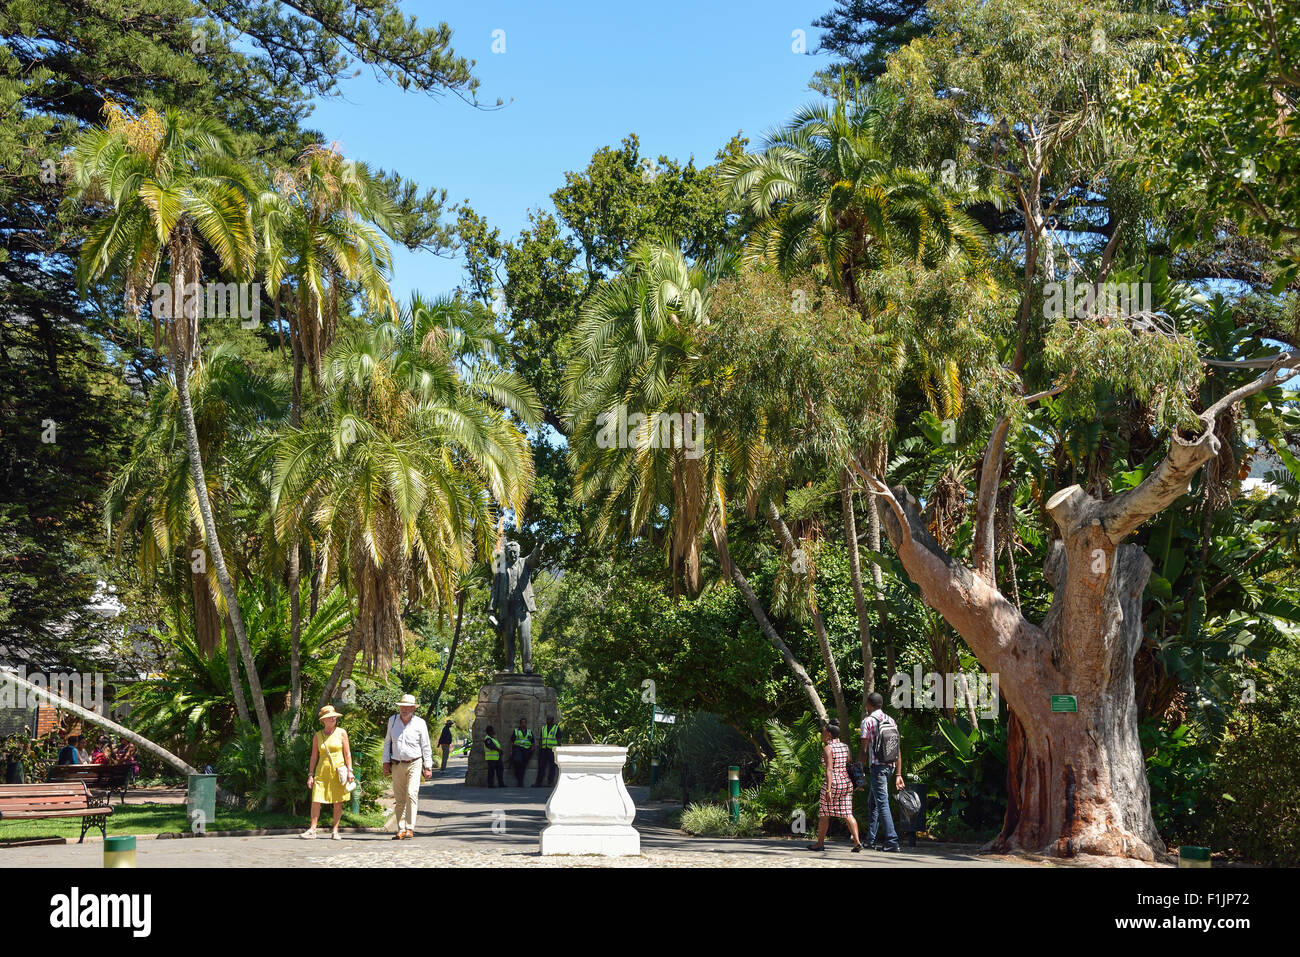 The Public Garden, The Company's Garden area, Cape Town, Western Cape Province, Republic of South Africa - Stock Image